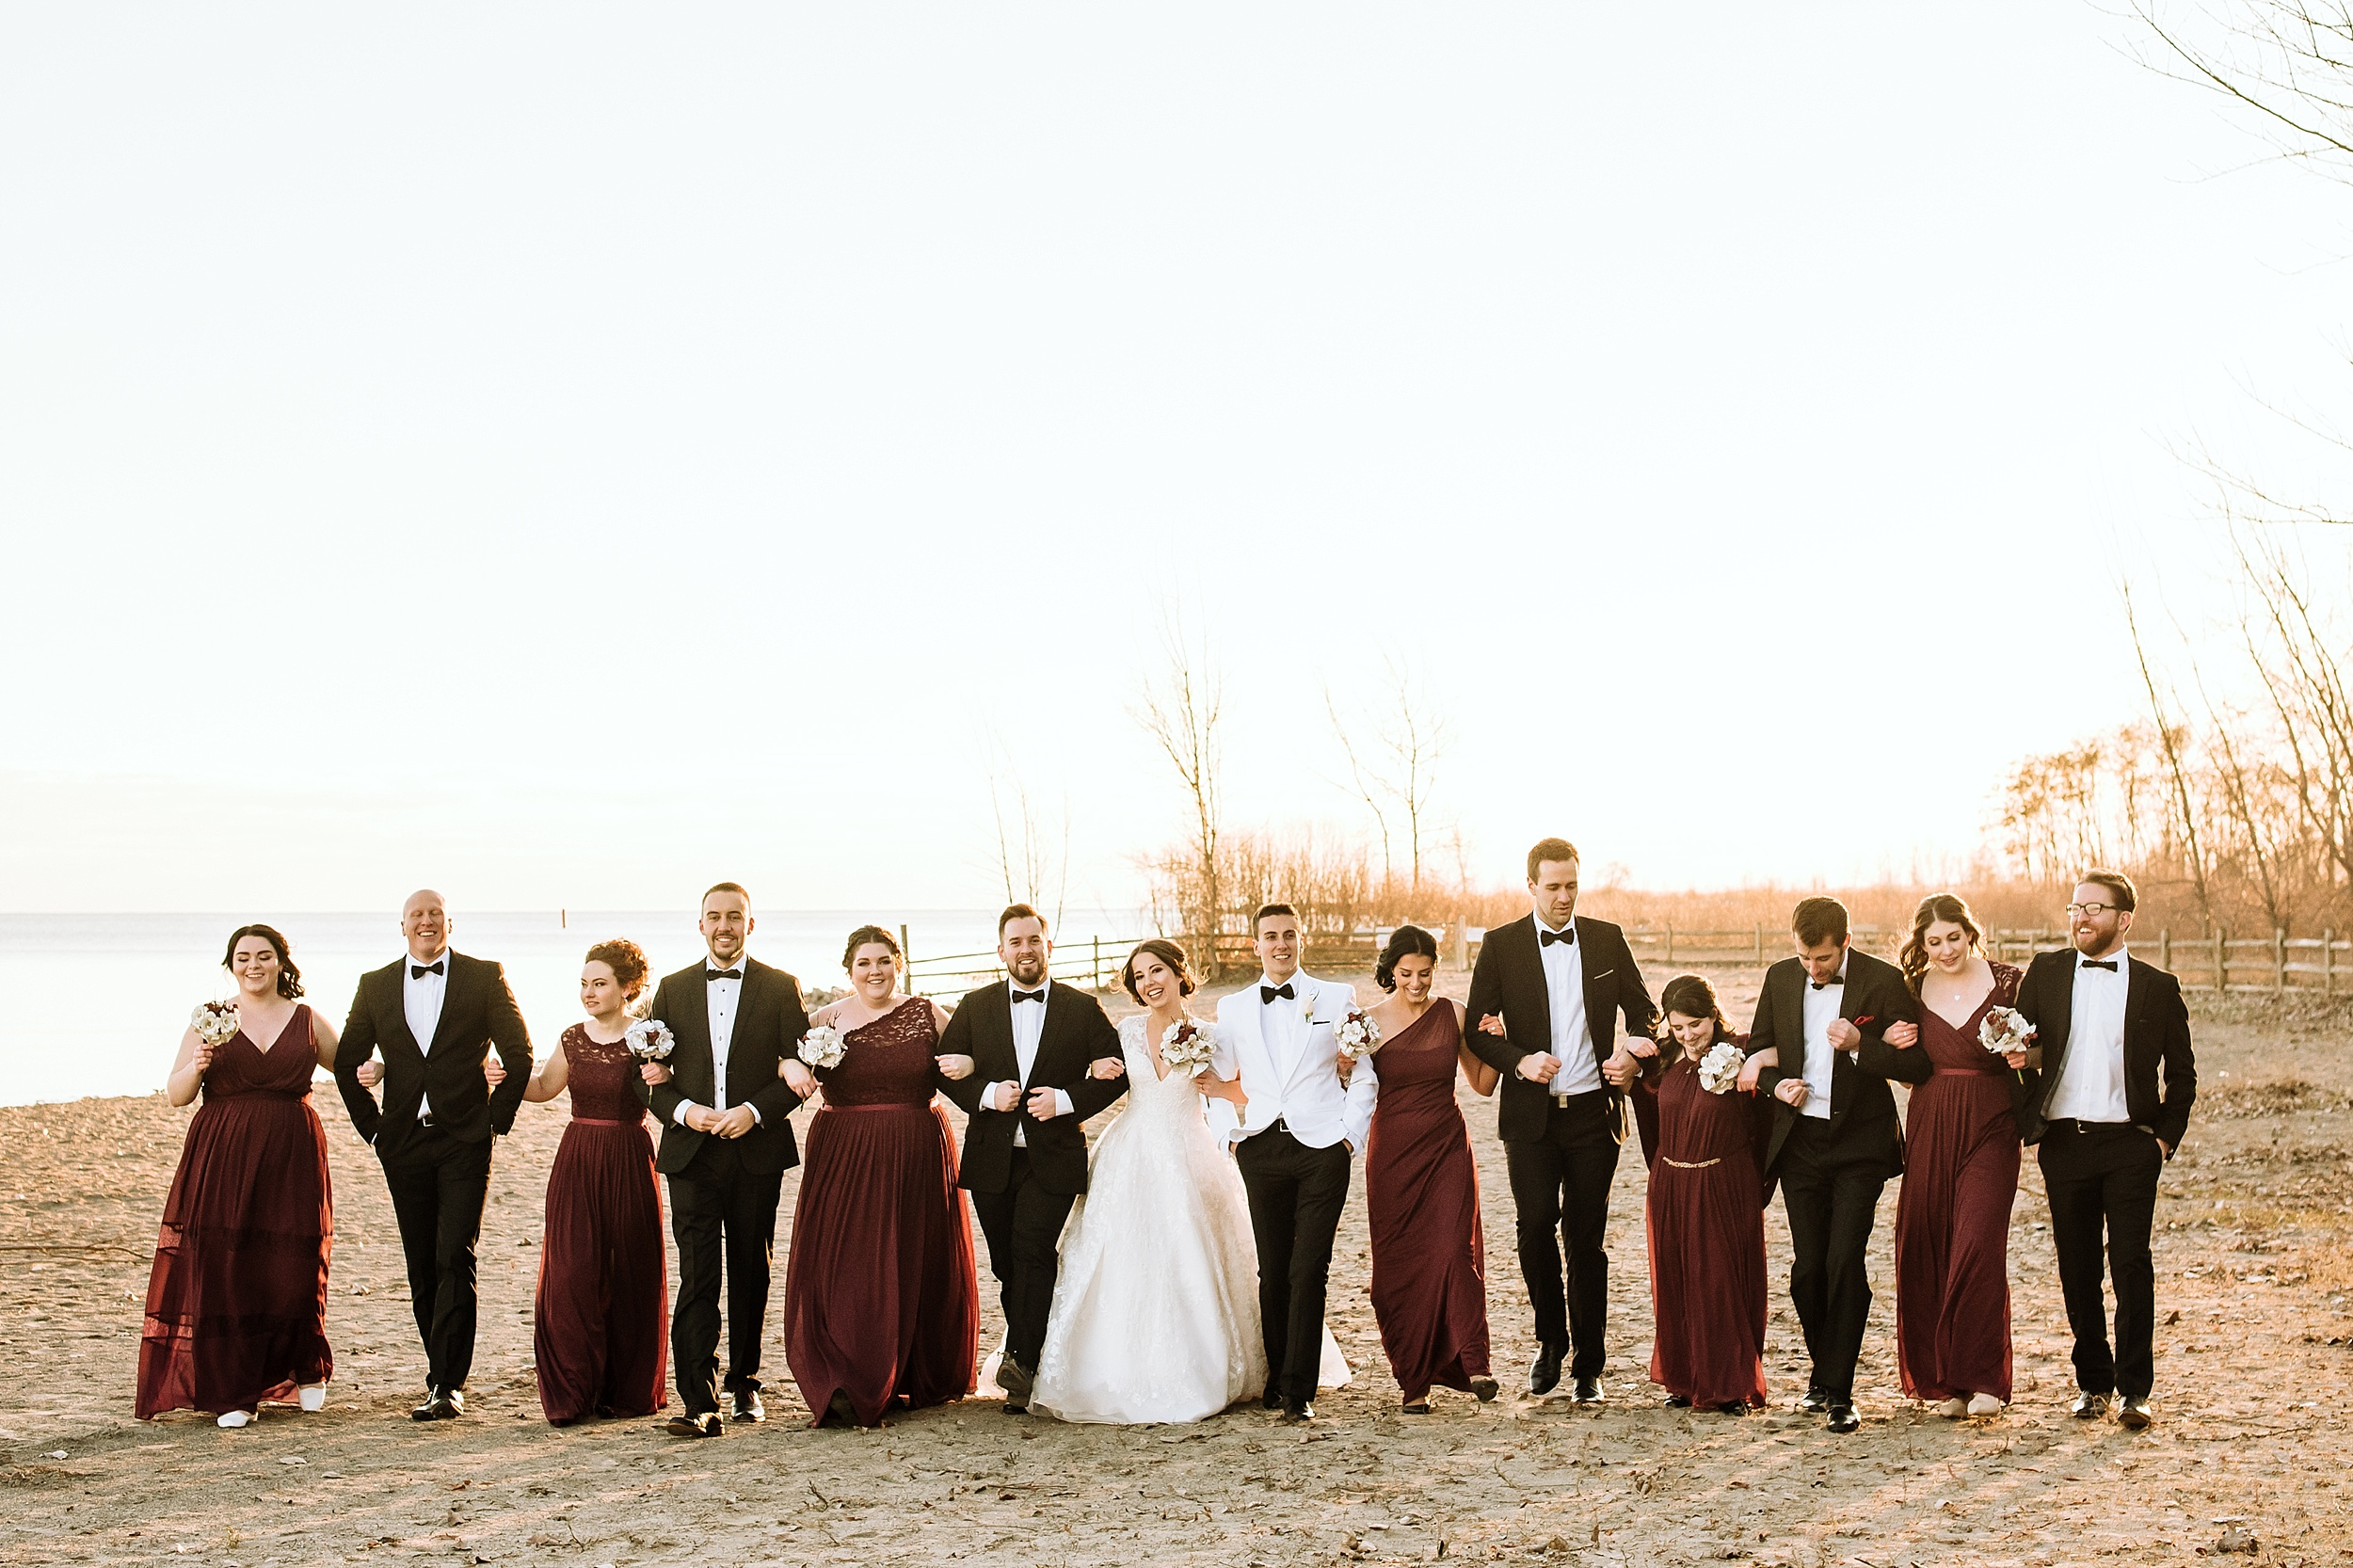 Jam_Factory_Wedding_Toronto_Winter_Wedding_Photographer_0039.jpg